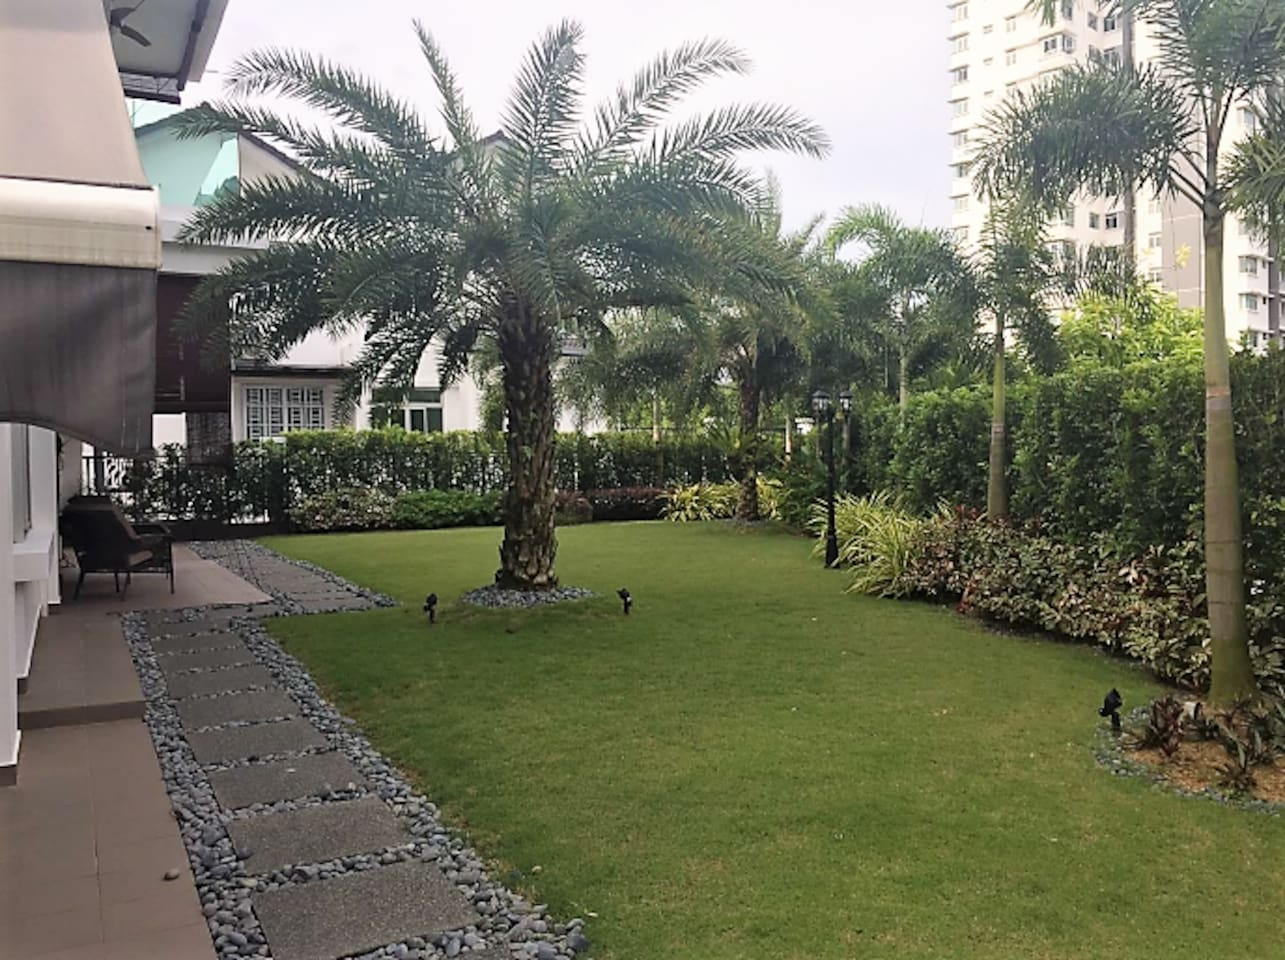 Large garden suitable for small party or events.